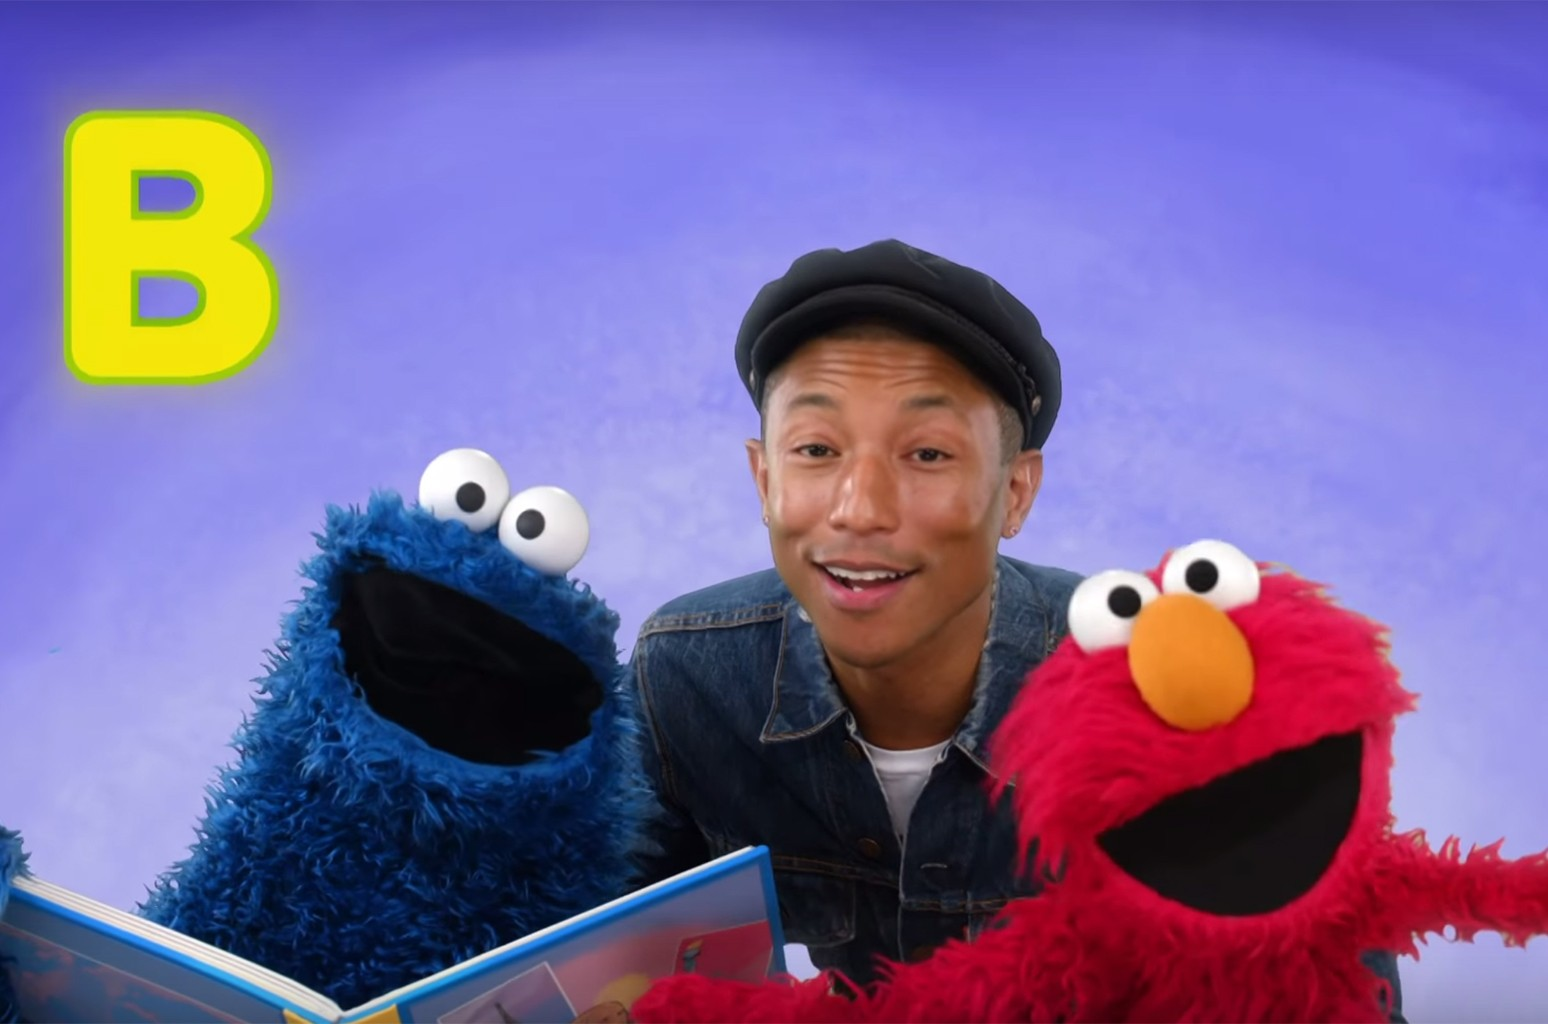 Pharrell Williams on Sesame Street.